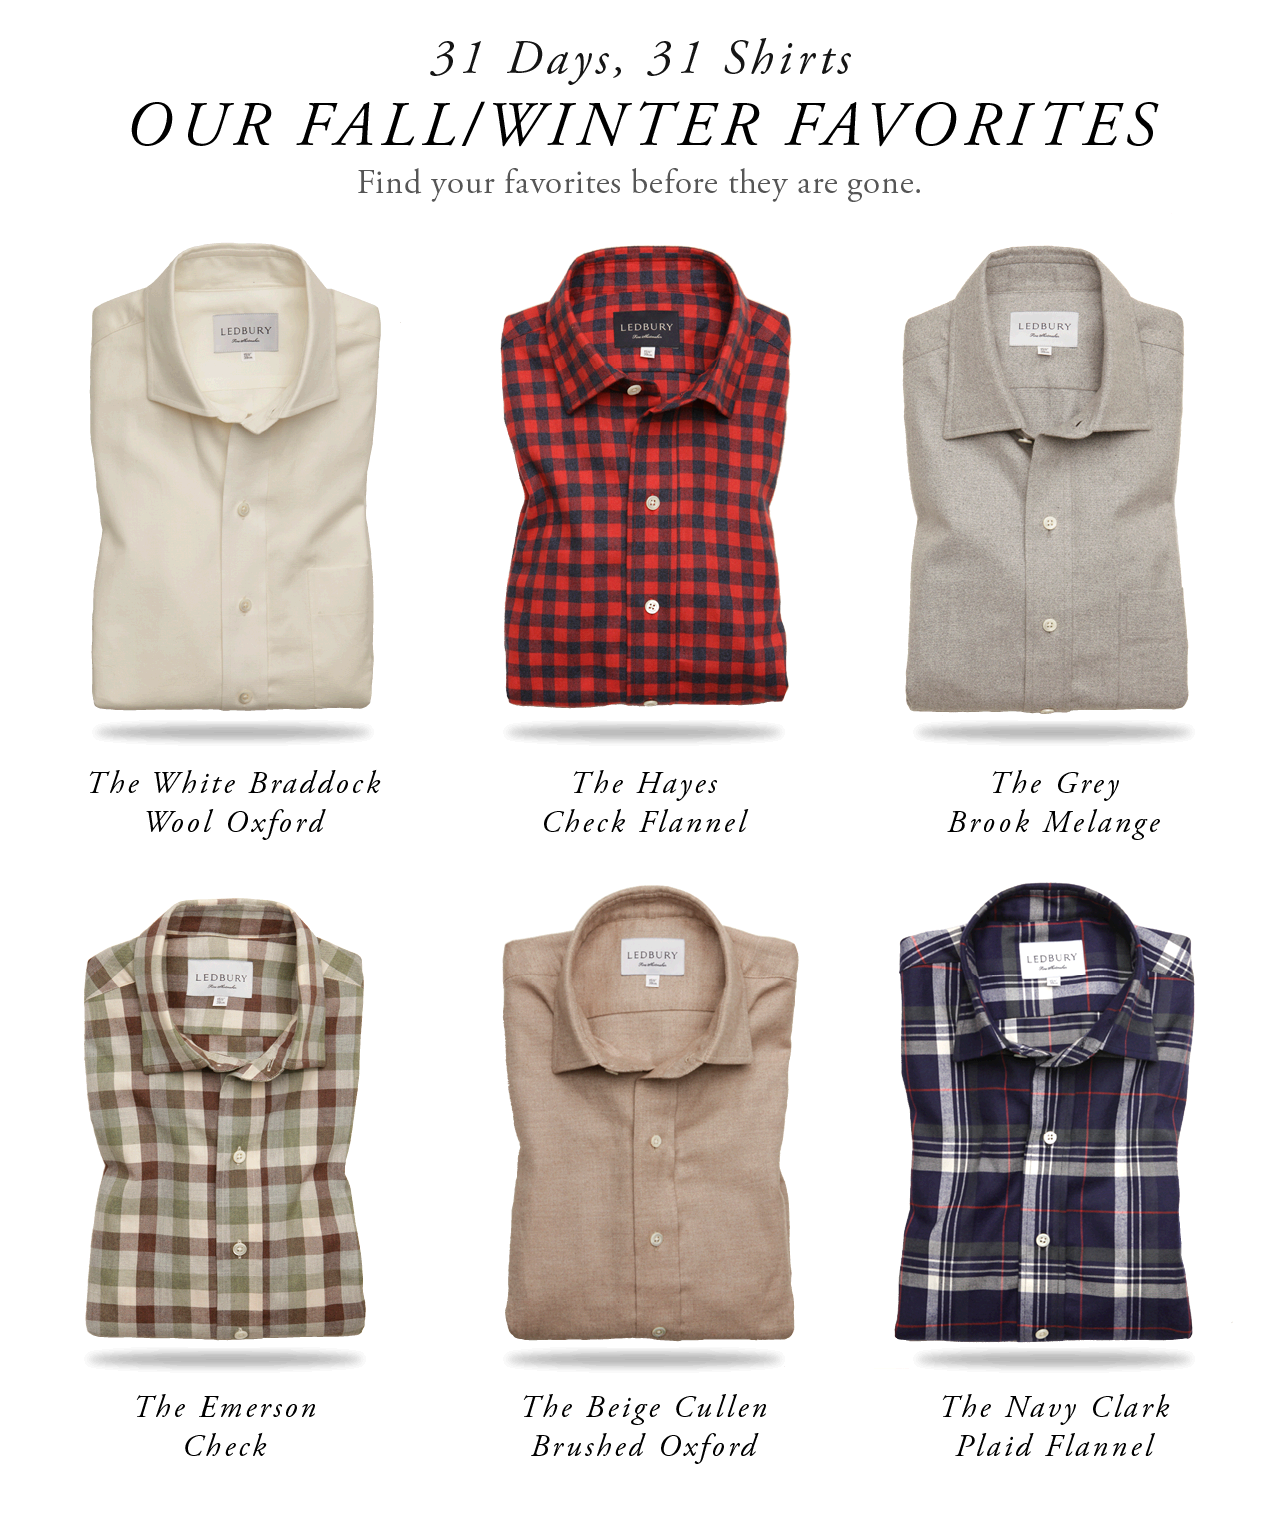 Fall/Winter Favorites